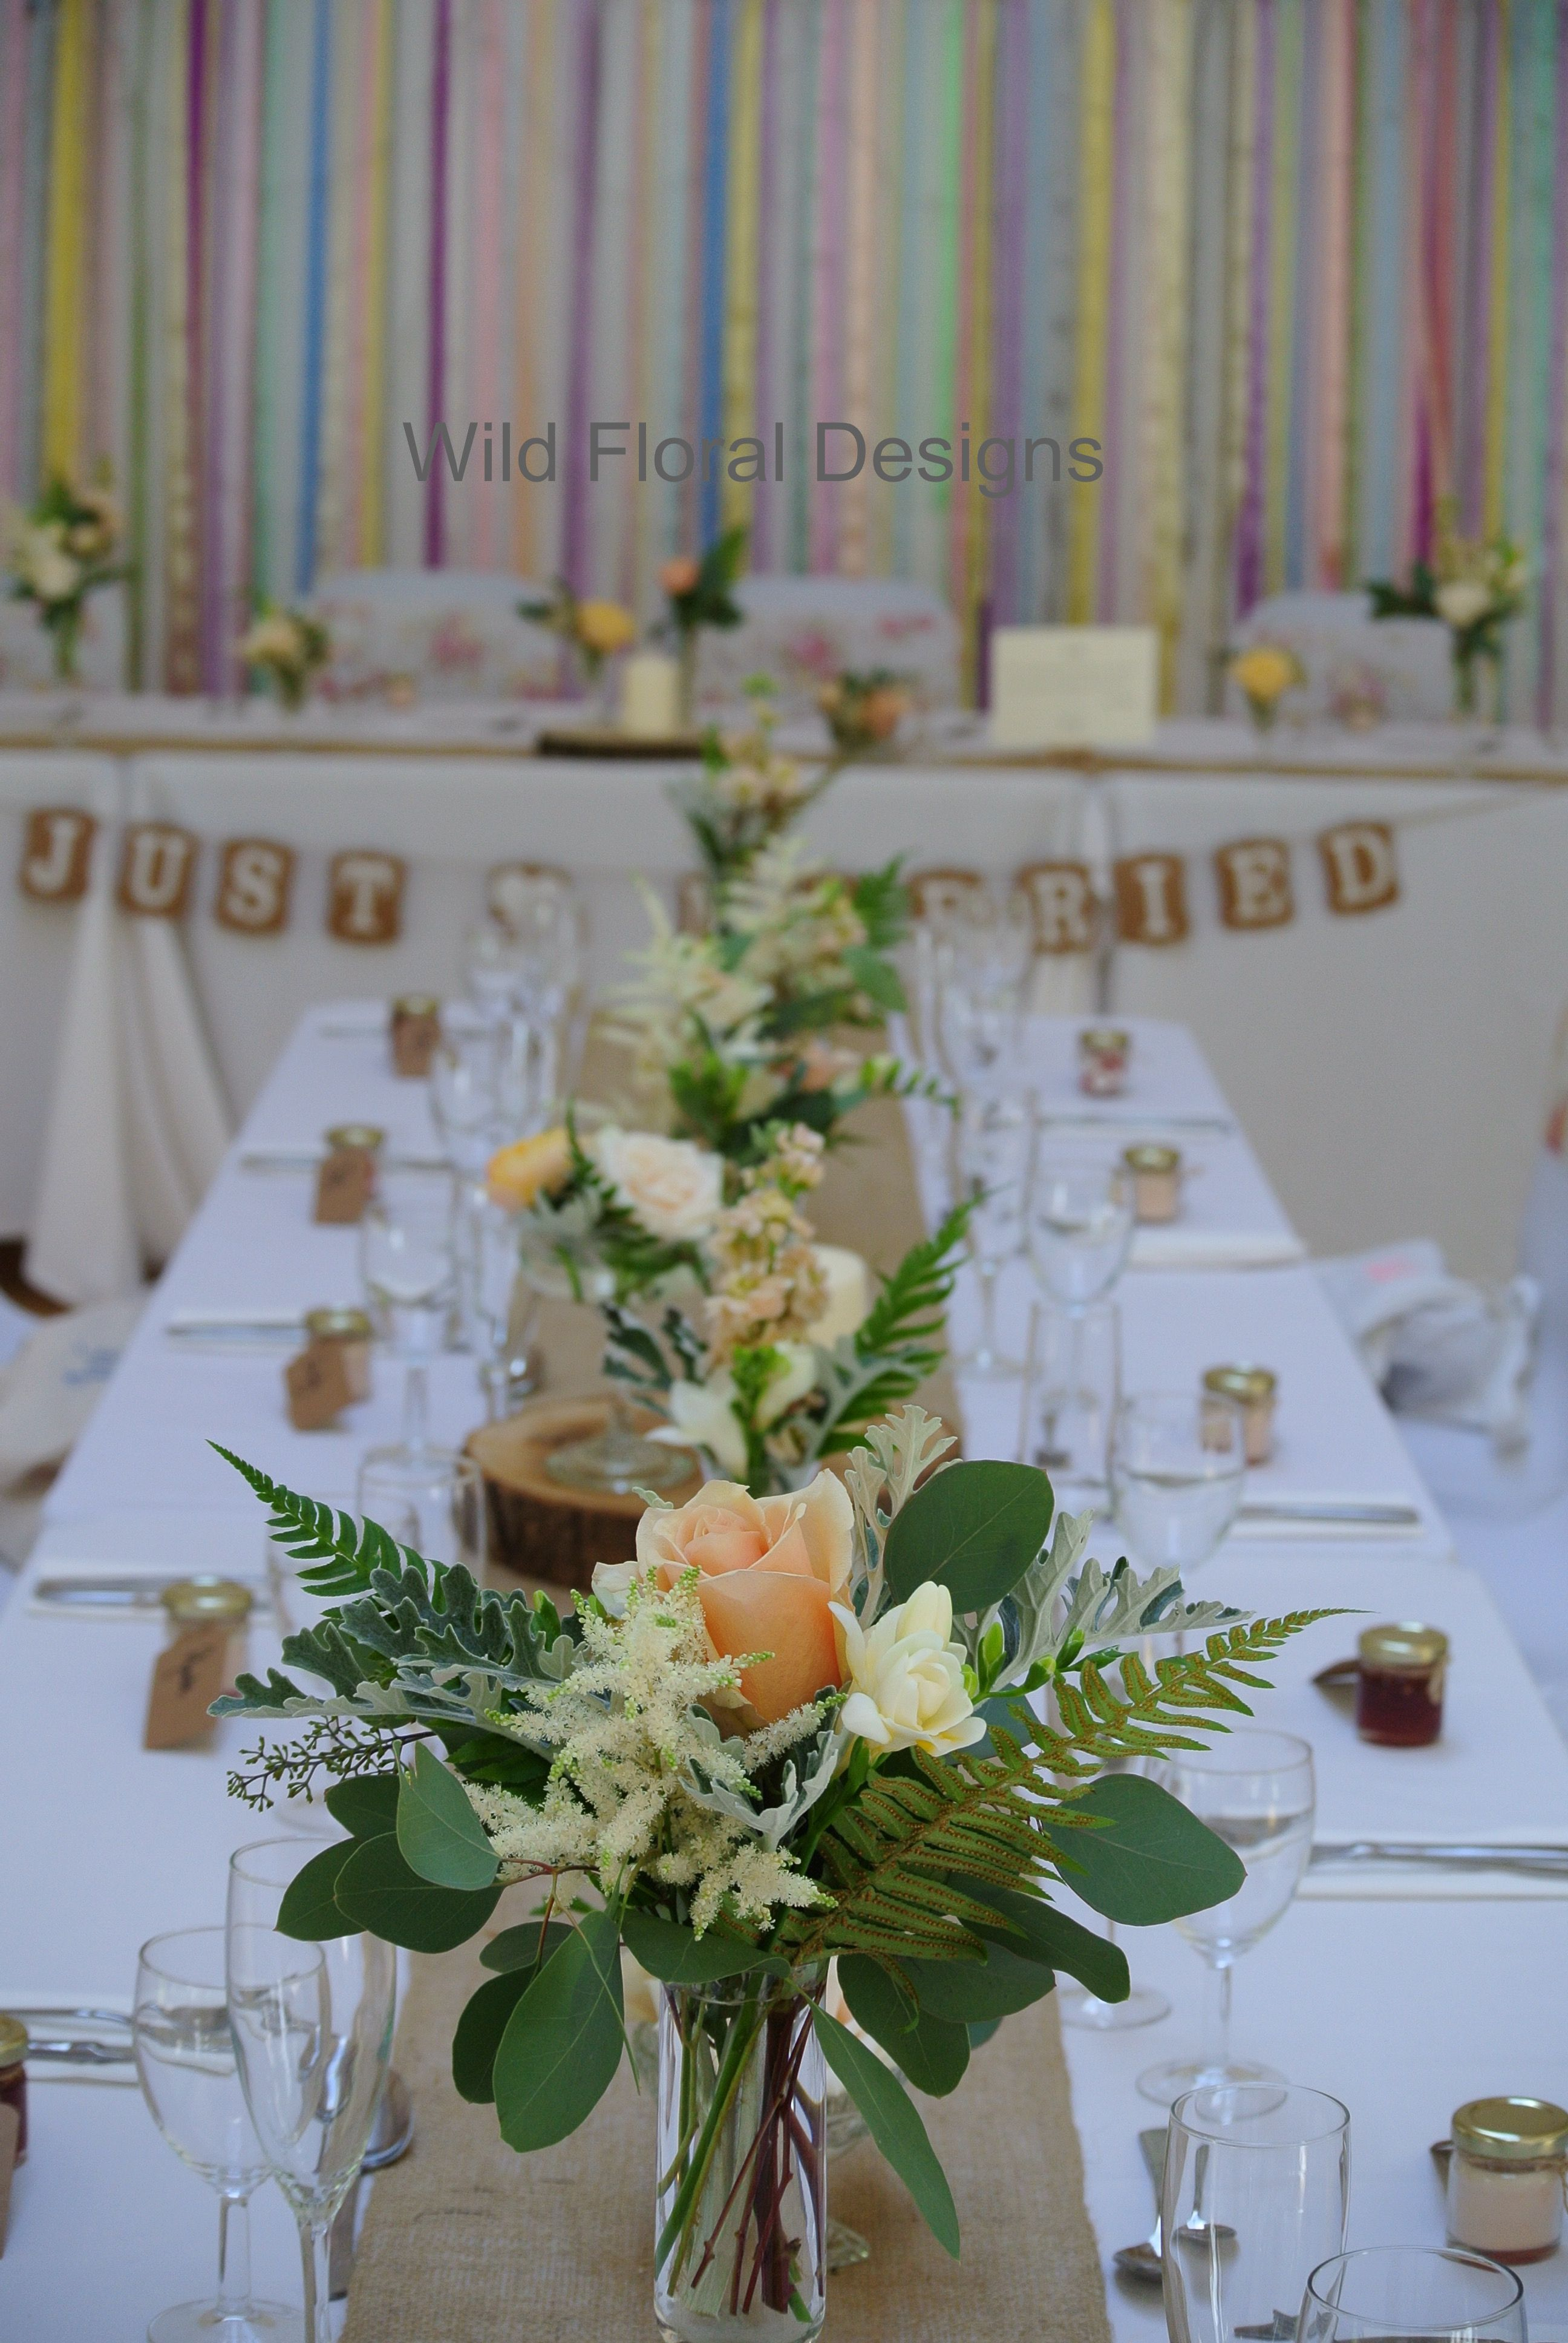 Stokeinteignhead Village Hall Wedding Devon Chair Covers Sashes Hessian Table Runners And Fl Designs Supplied By Wild